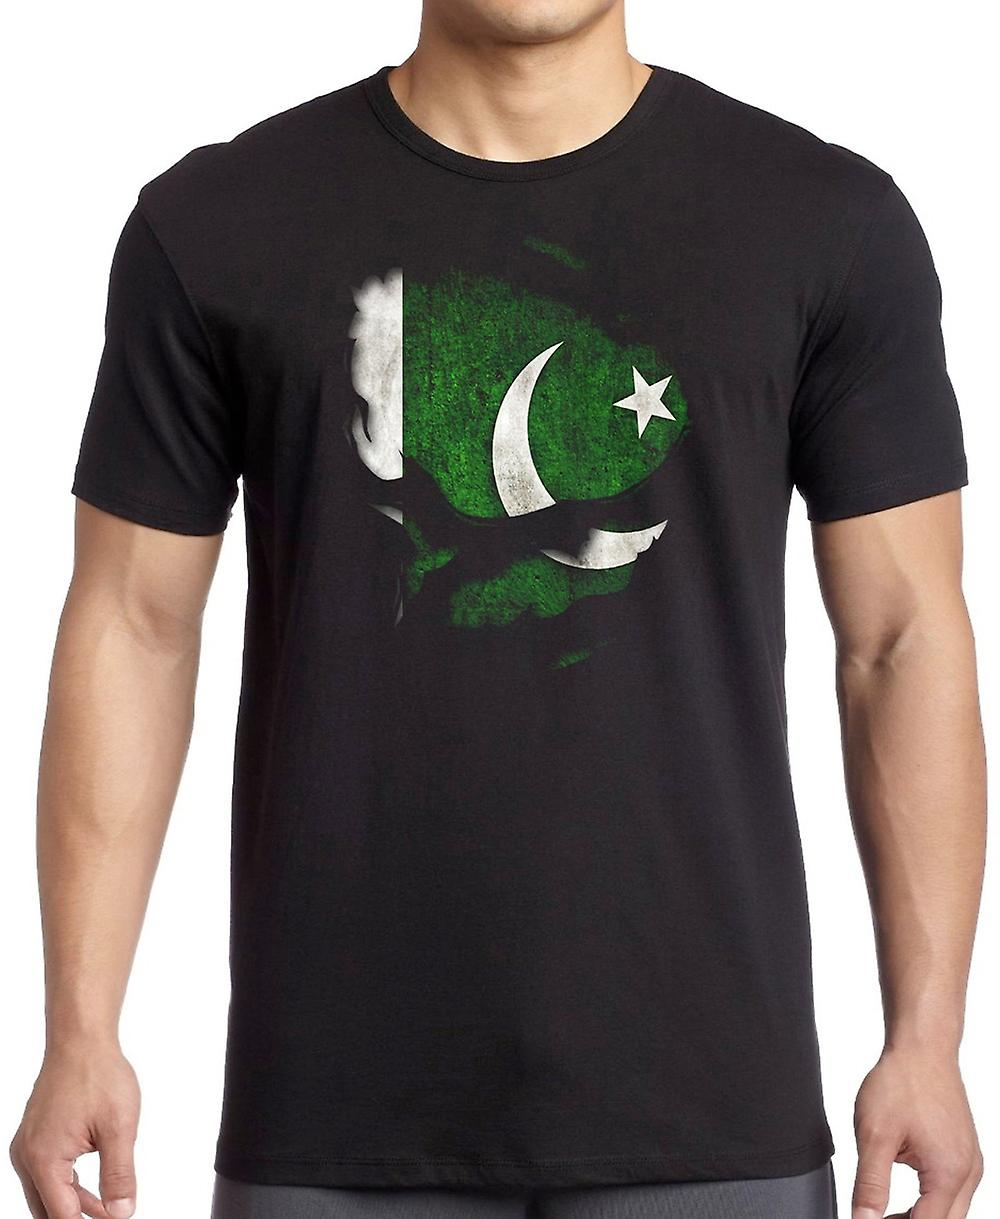 Pakistan slet effekt Under skjorta kvinnor T Shirt